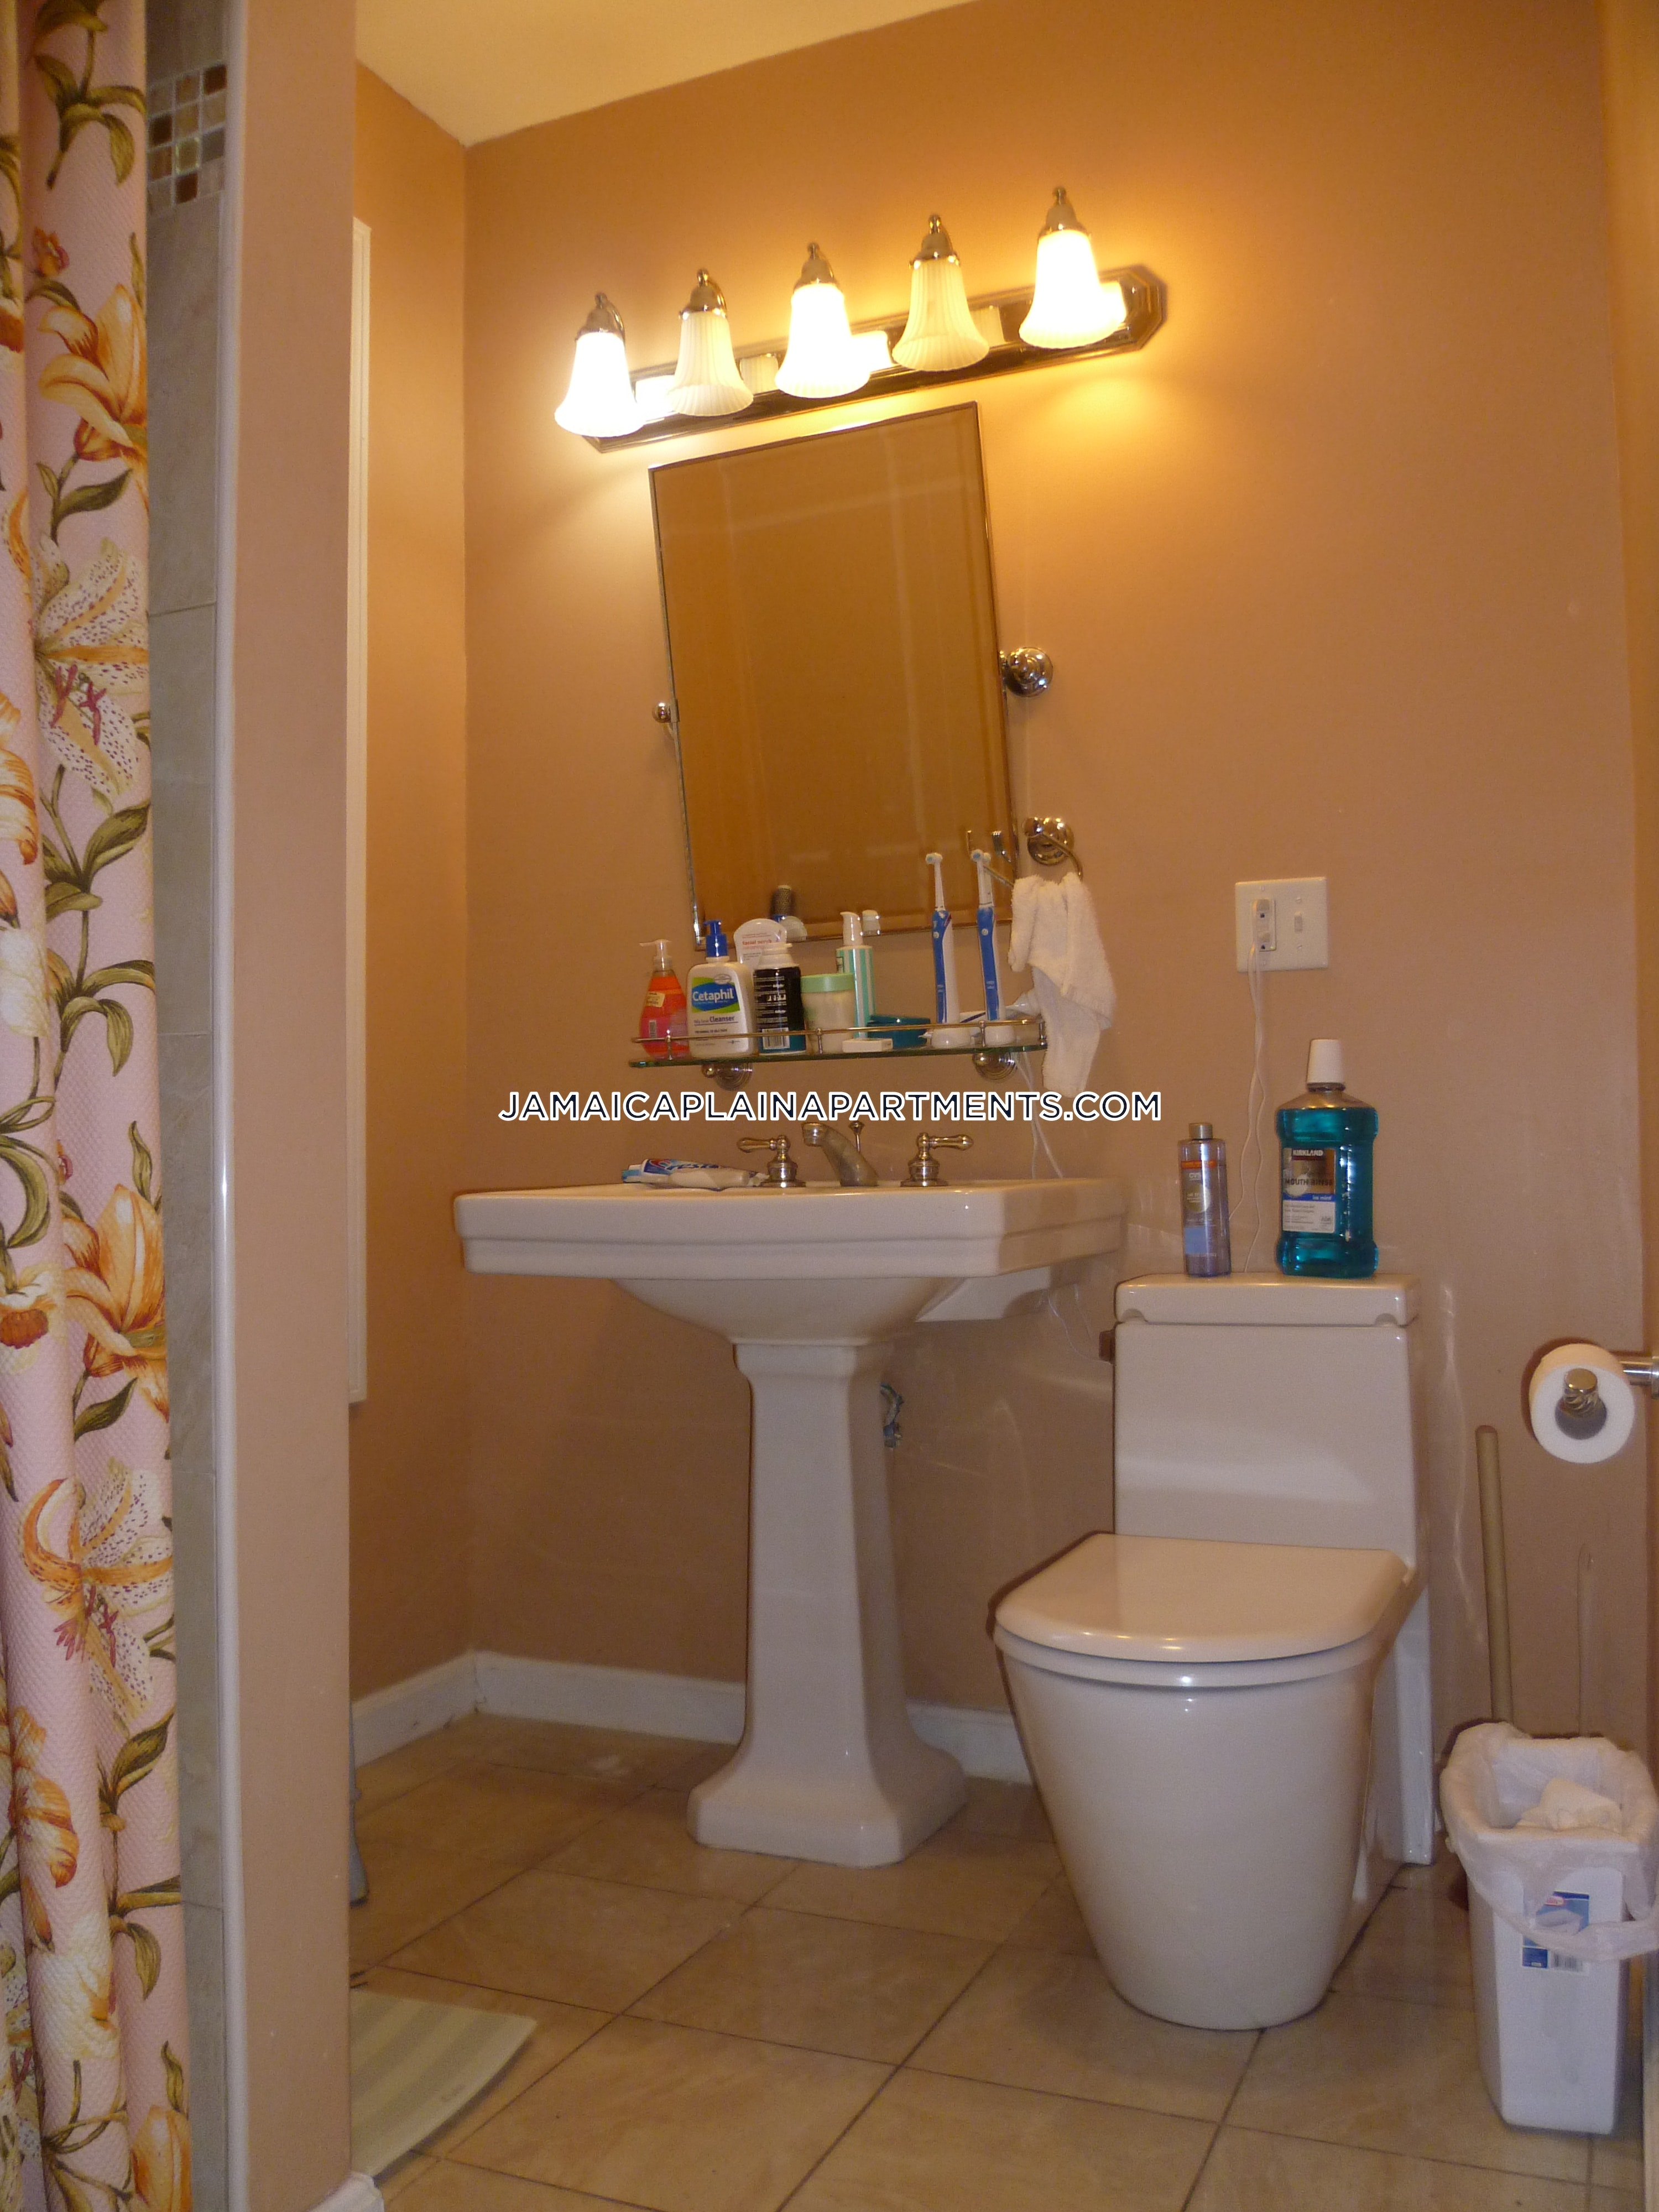 Bathroom Sinks Jamaica apartments for rent in roslindale ma | 2 beds 1 bath - boston